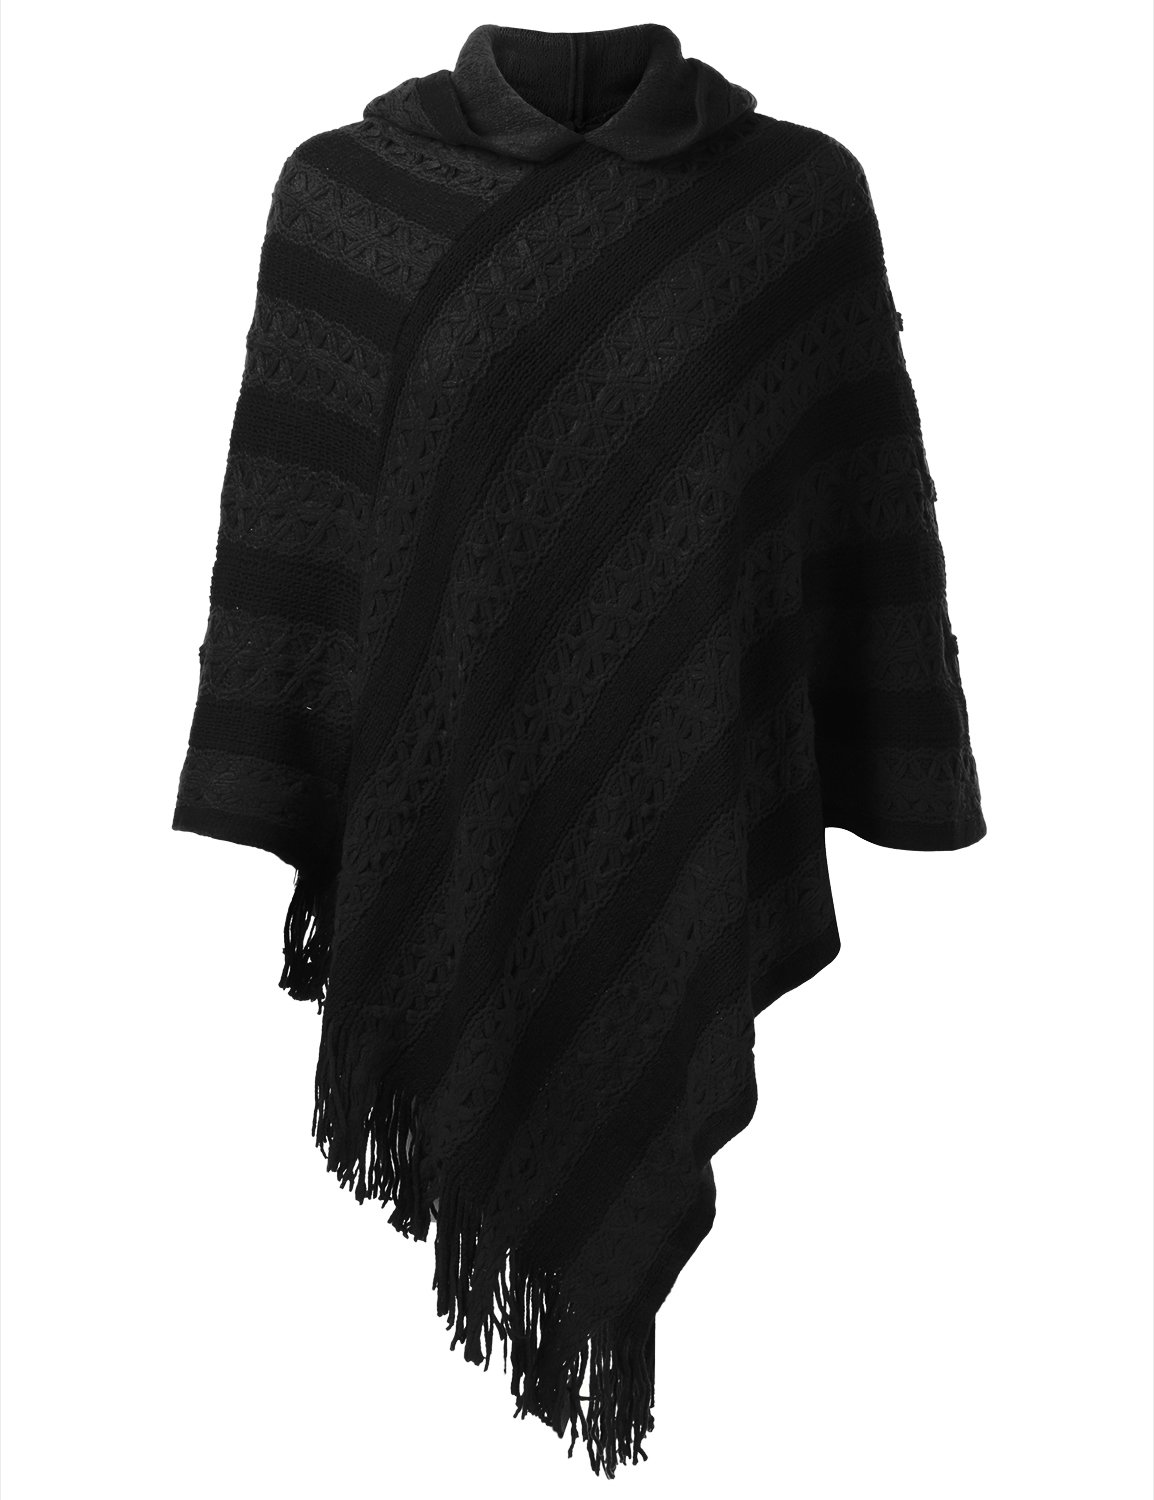 Fifth Parallel Threads FPT Women's Two-Tone Striped Hooded Knit Poncho Black OS